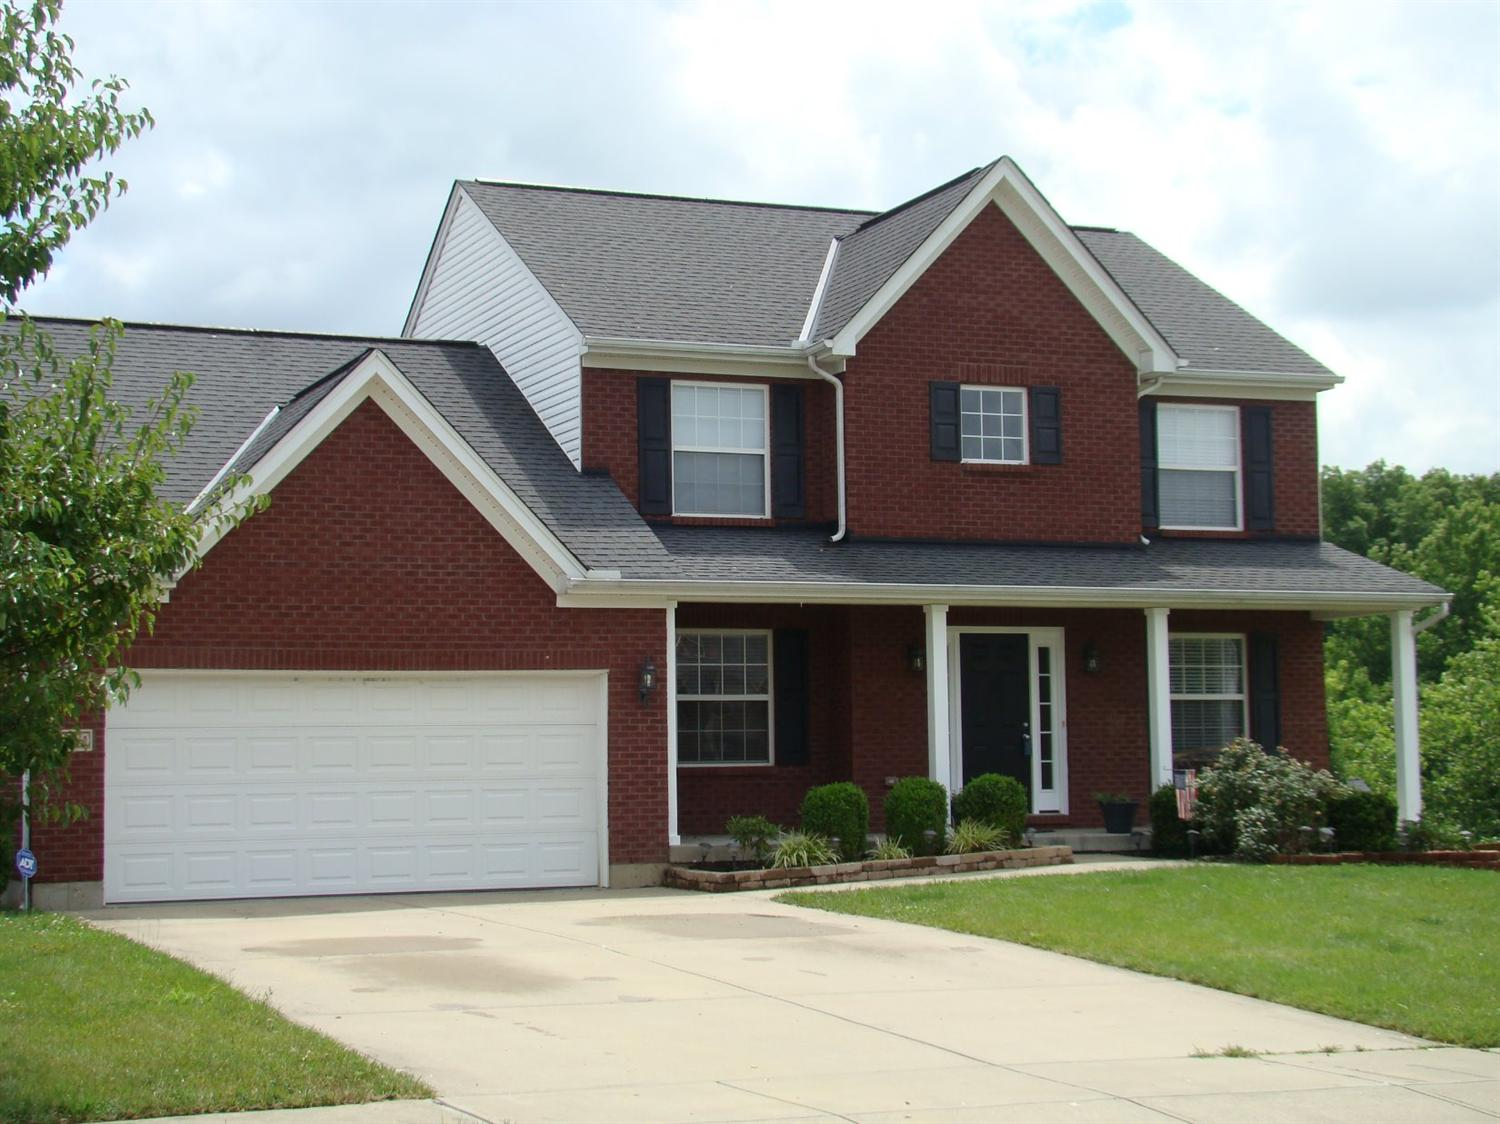 Photo 1 for 10310 Limerick Cir Independence, KY 41015